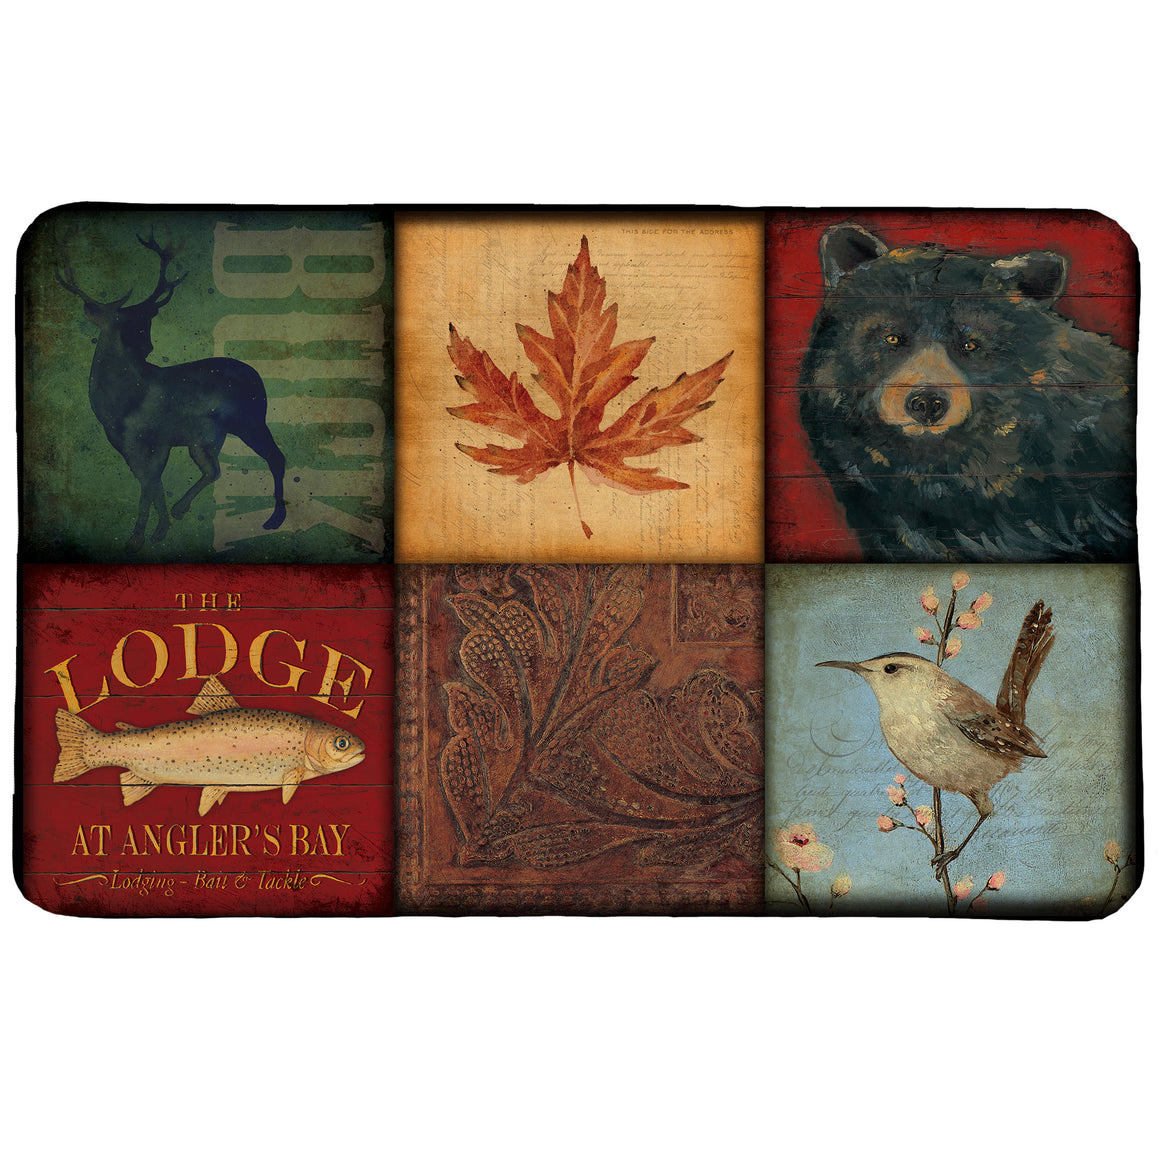 Lodge Patch Memory Foam Rug features a rustic and colorful, patch-work design with animal and plant life.